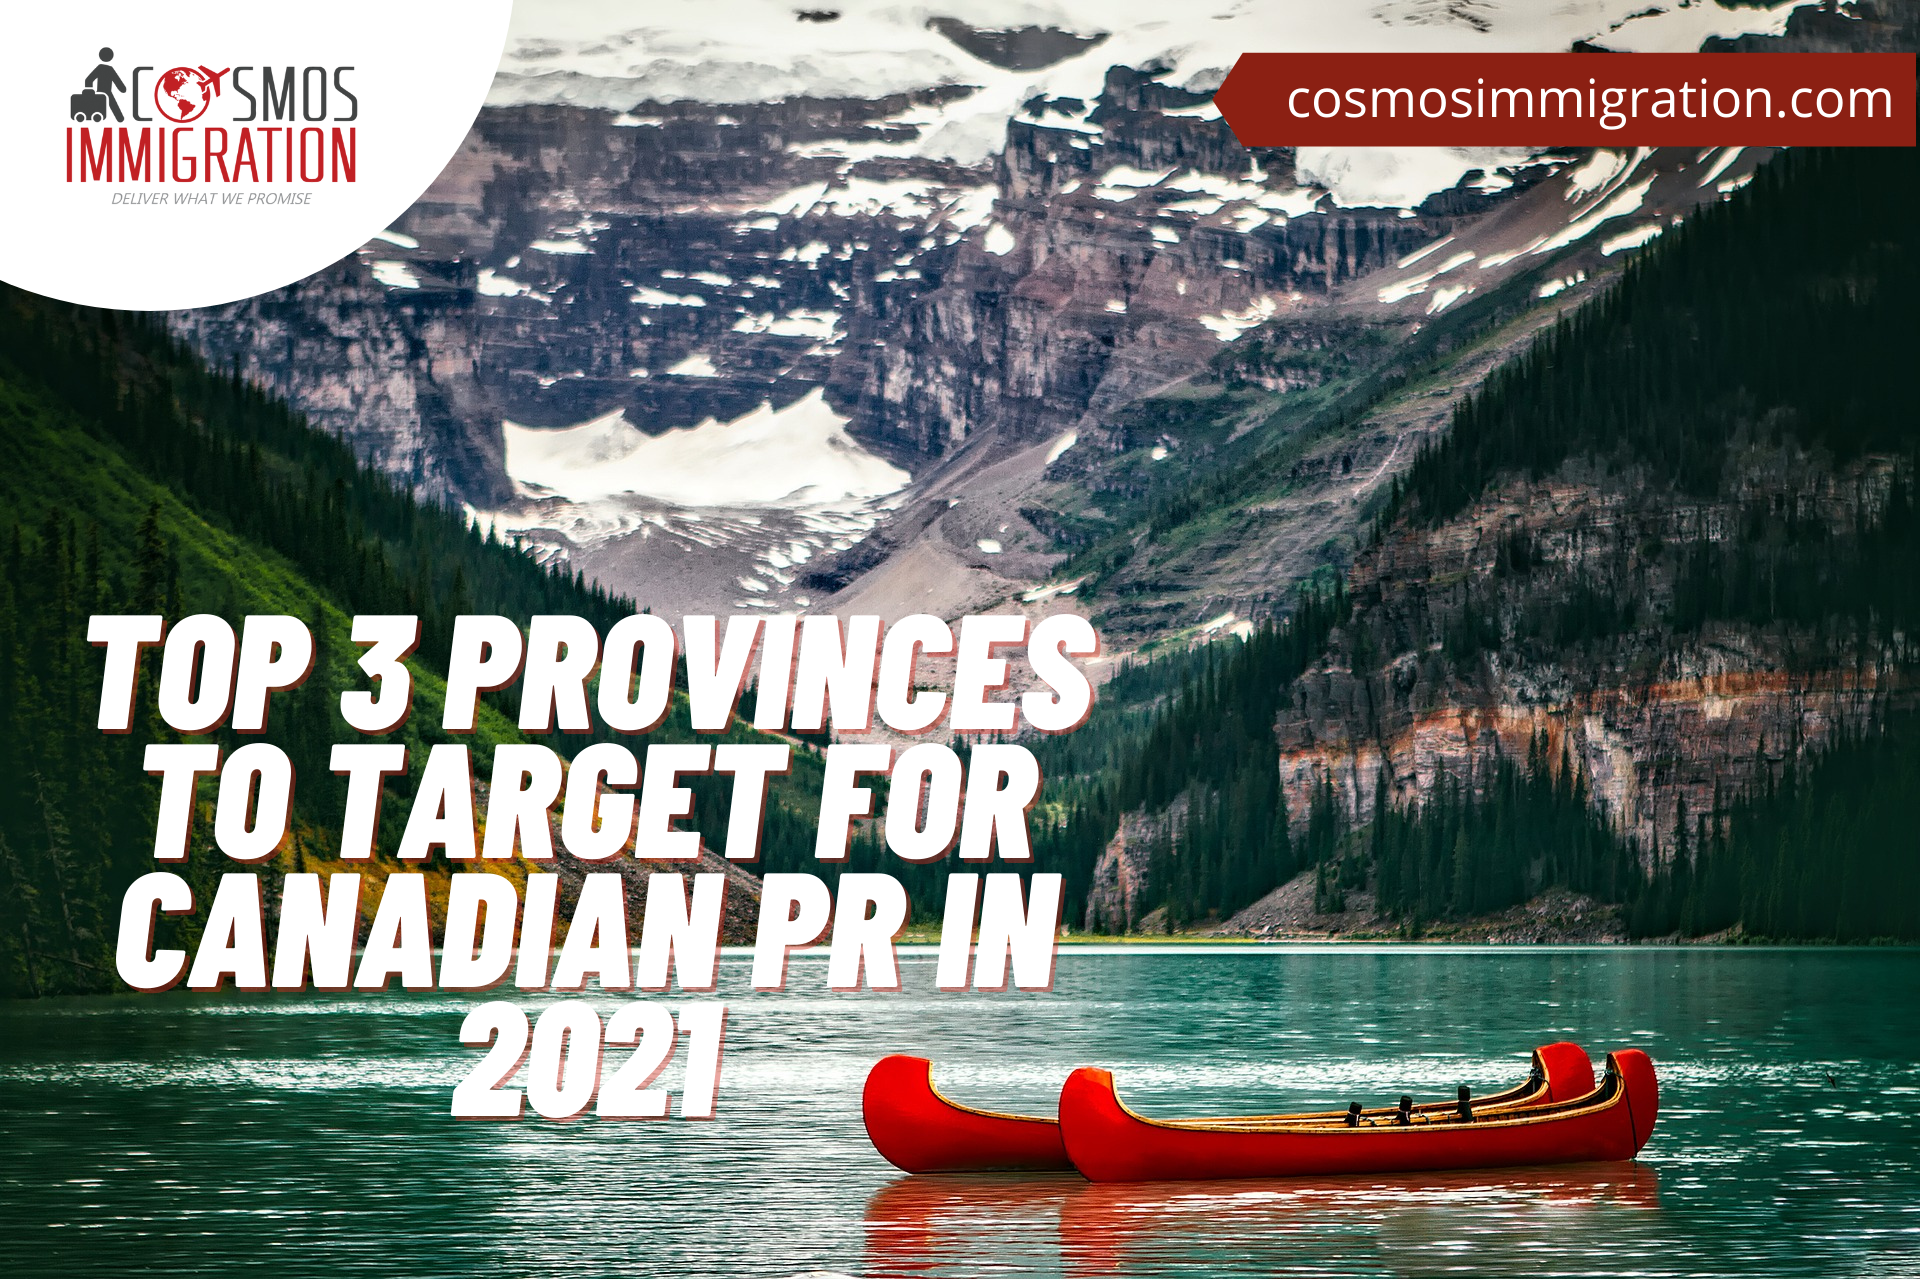 PROVINCES TO TARGET FOR CANADIAN PR